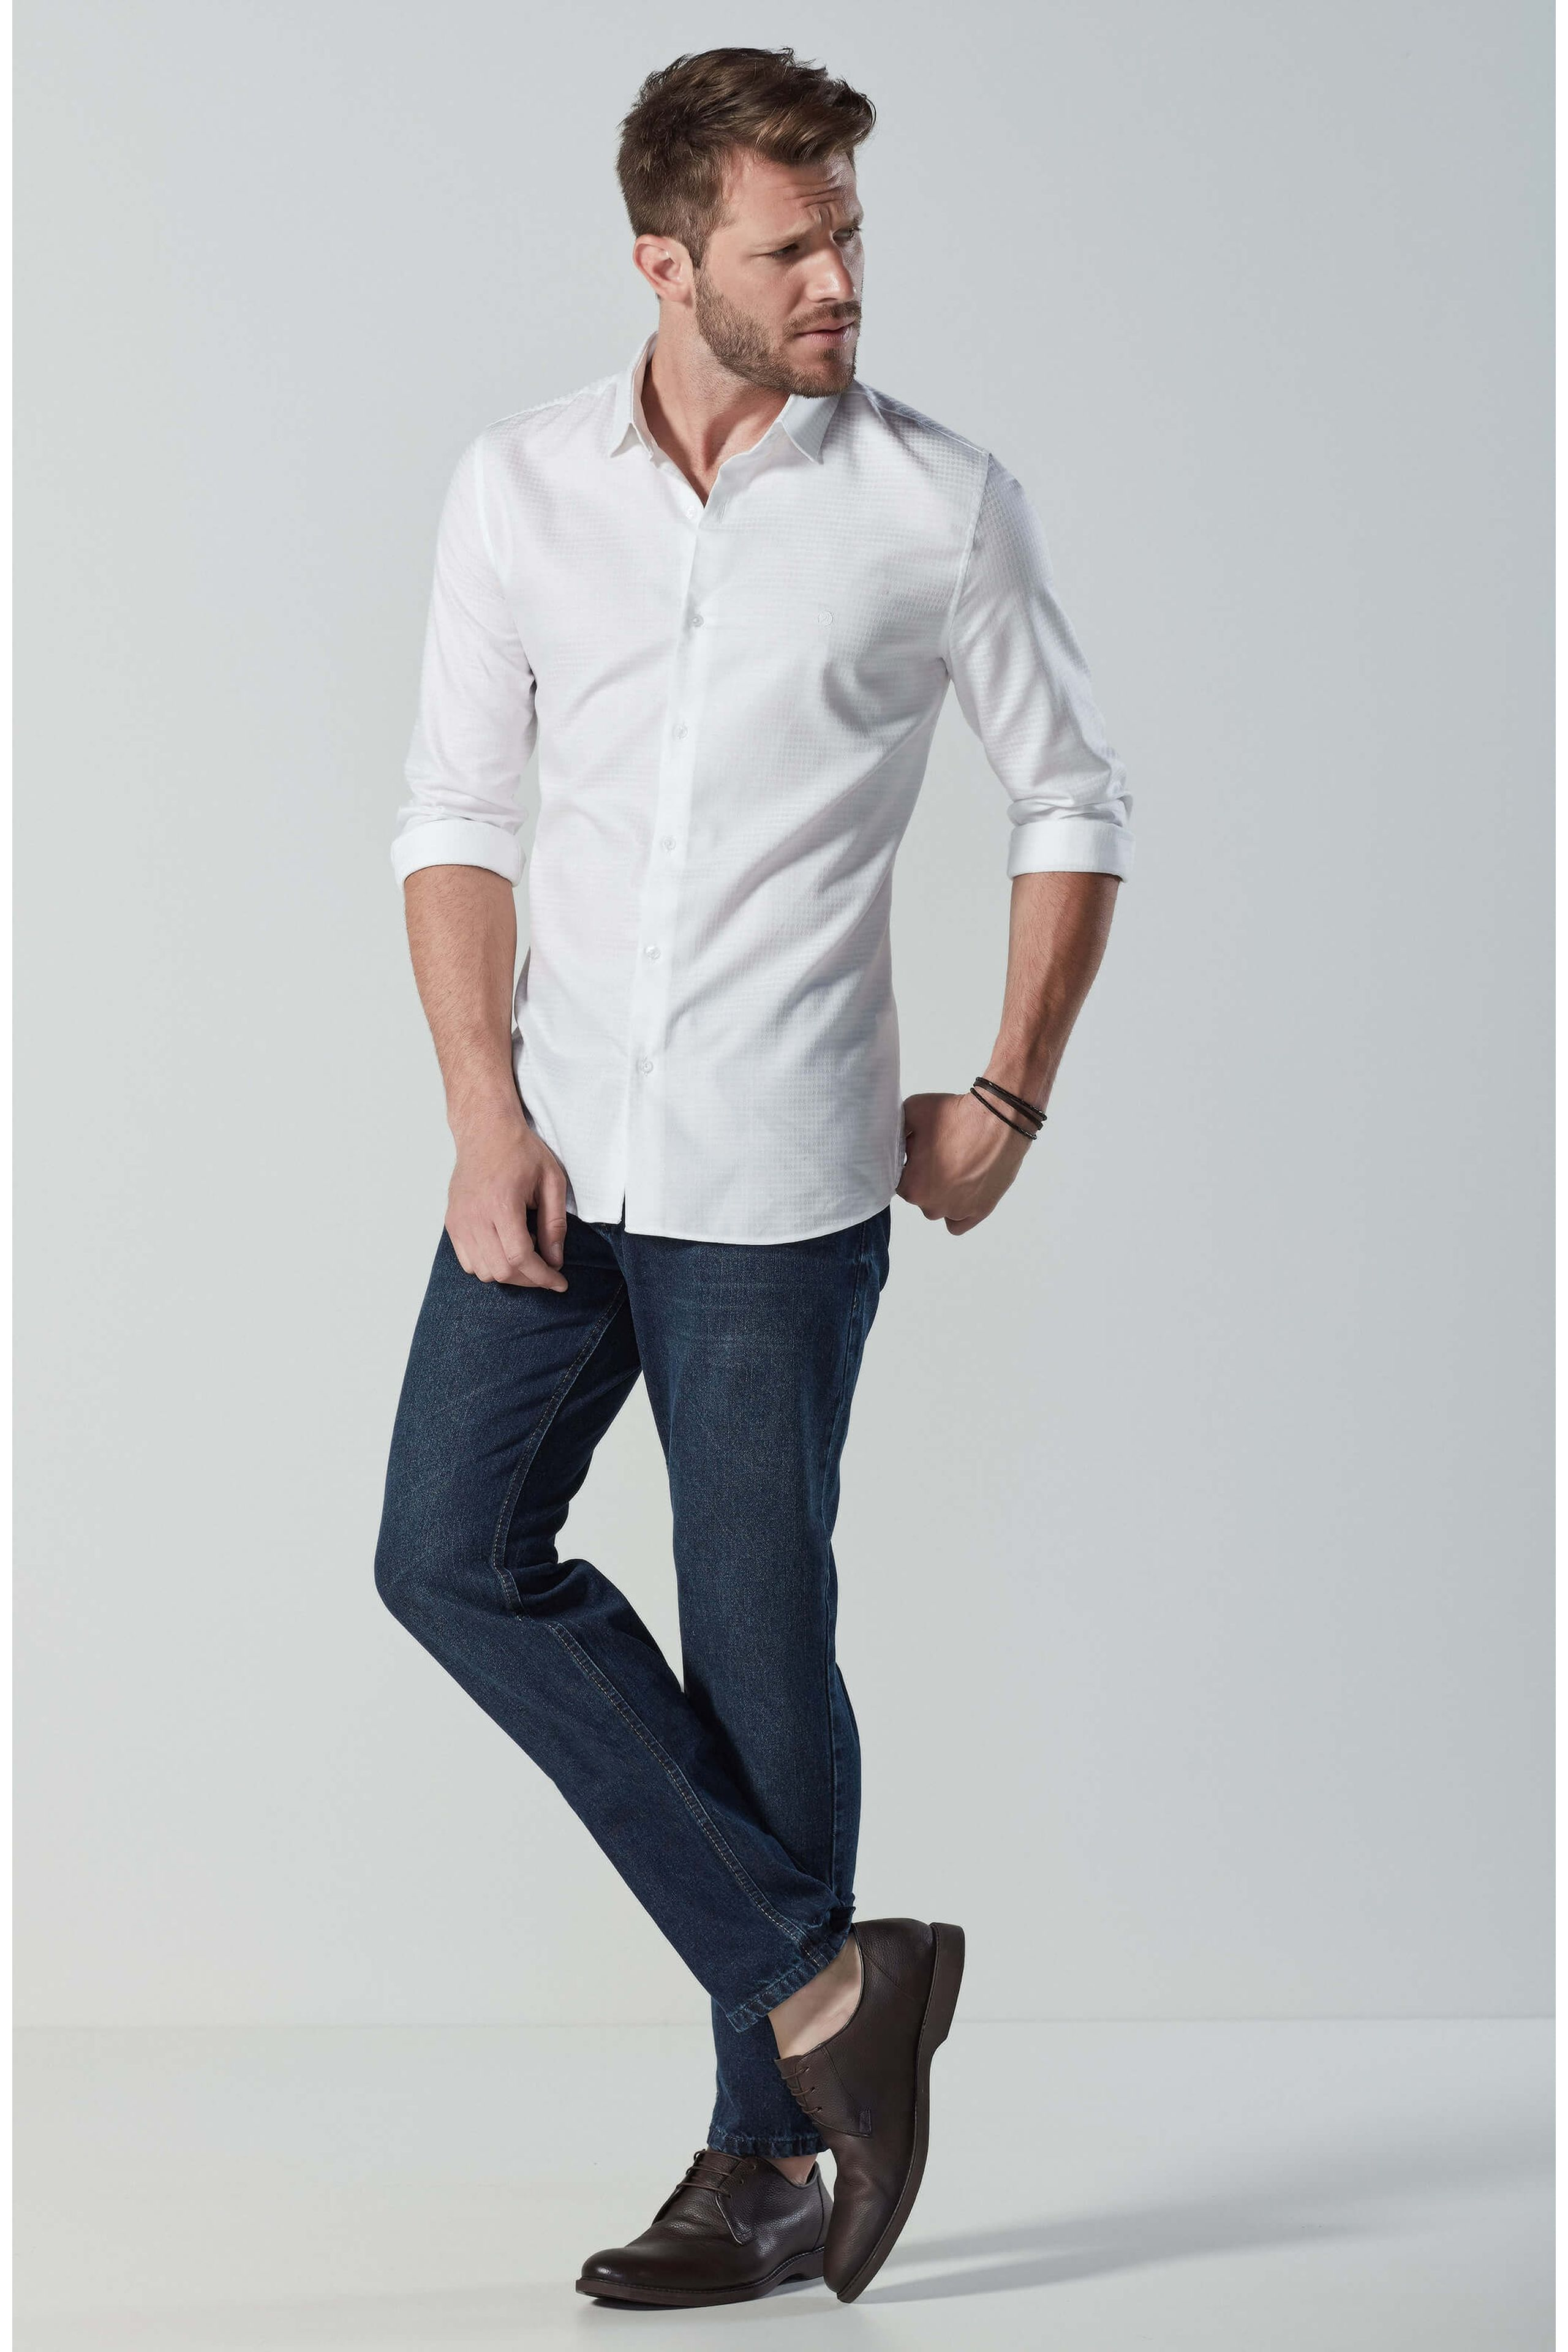 2601GWZ41699_900_2-CAMISA-WORK-SLIM-FIT-ML-MAQUINETADA